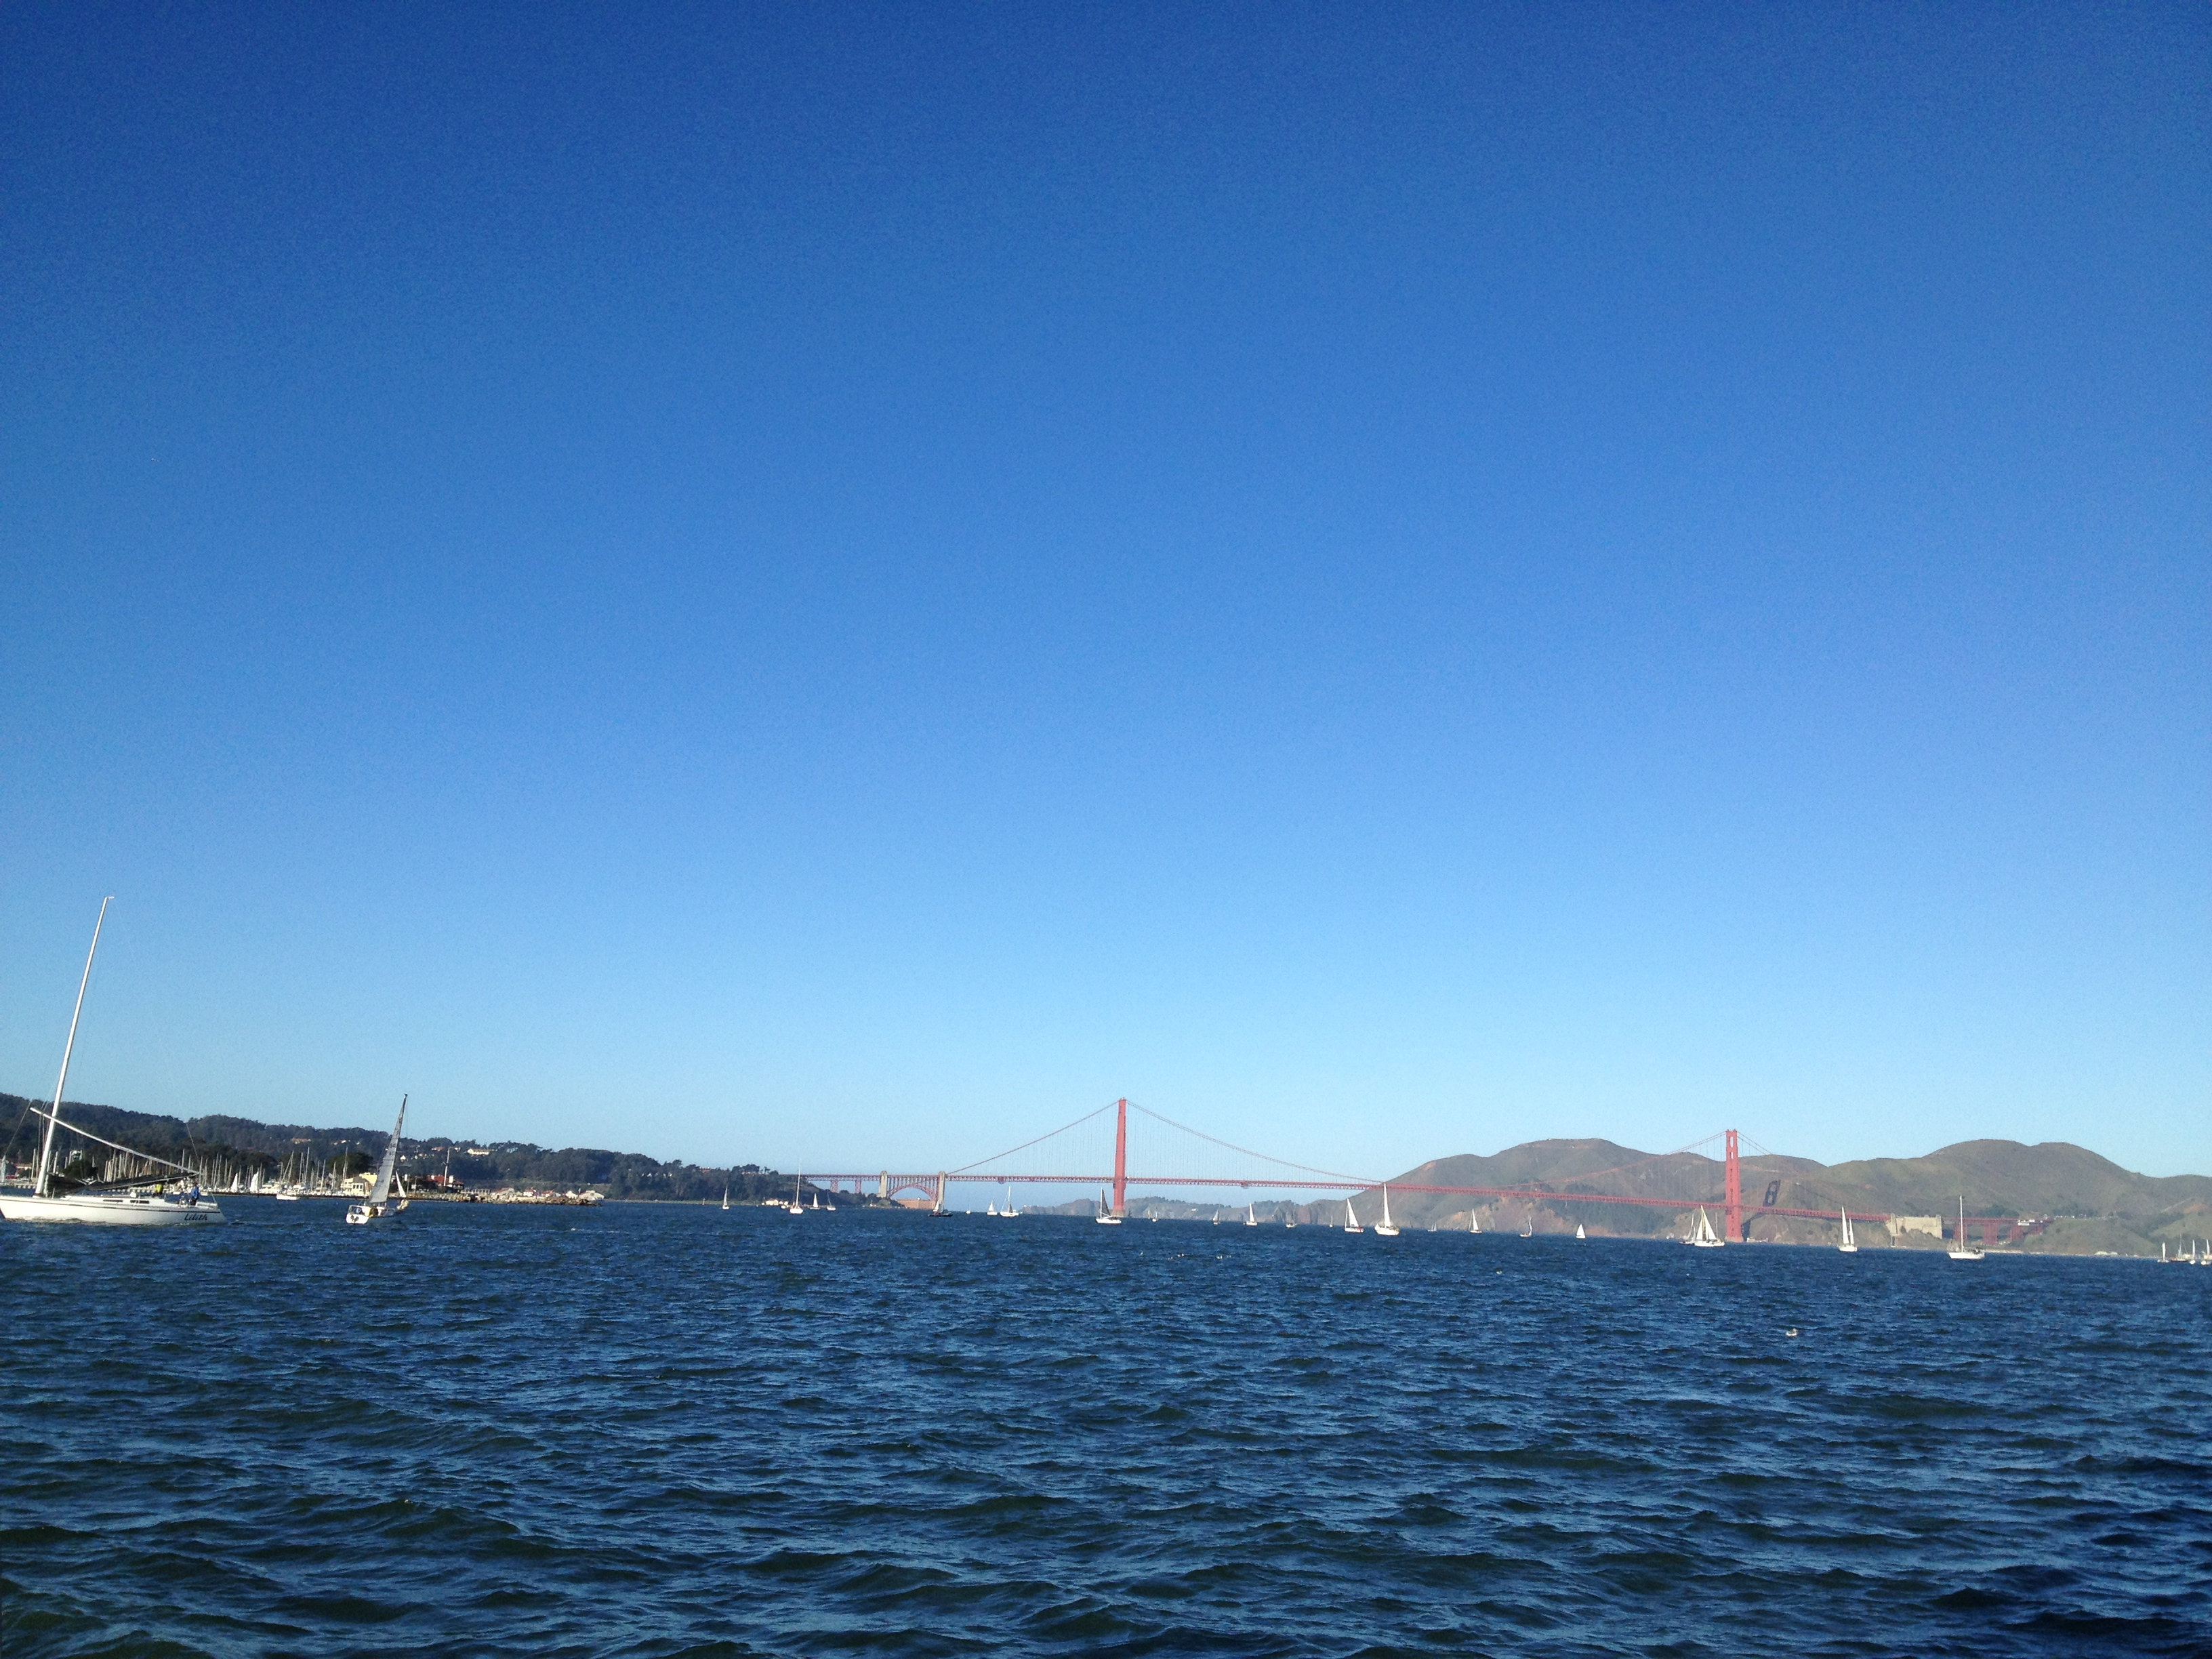 Getting closer to the Golden Gate Bridge